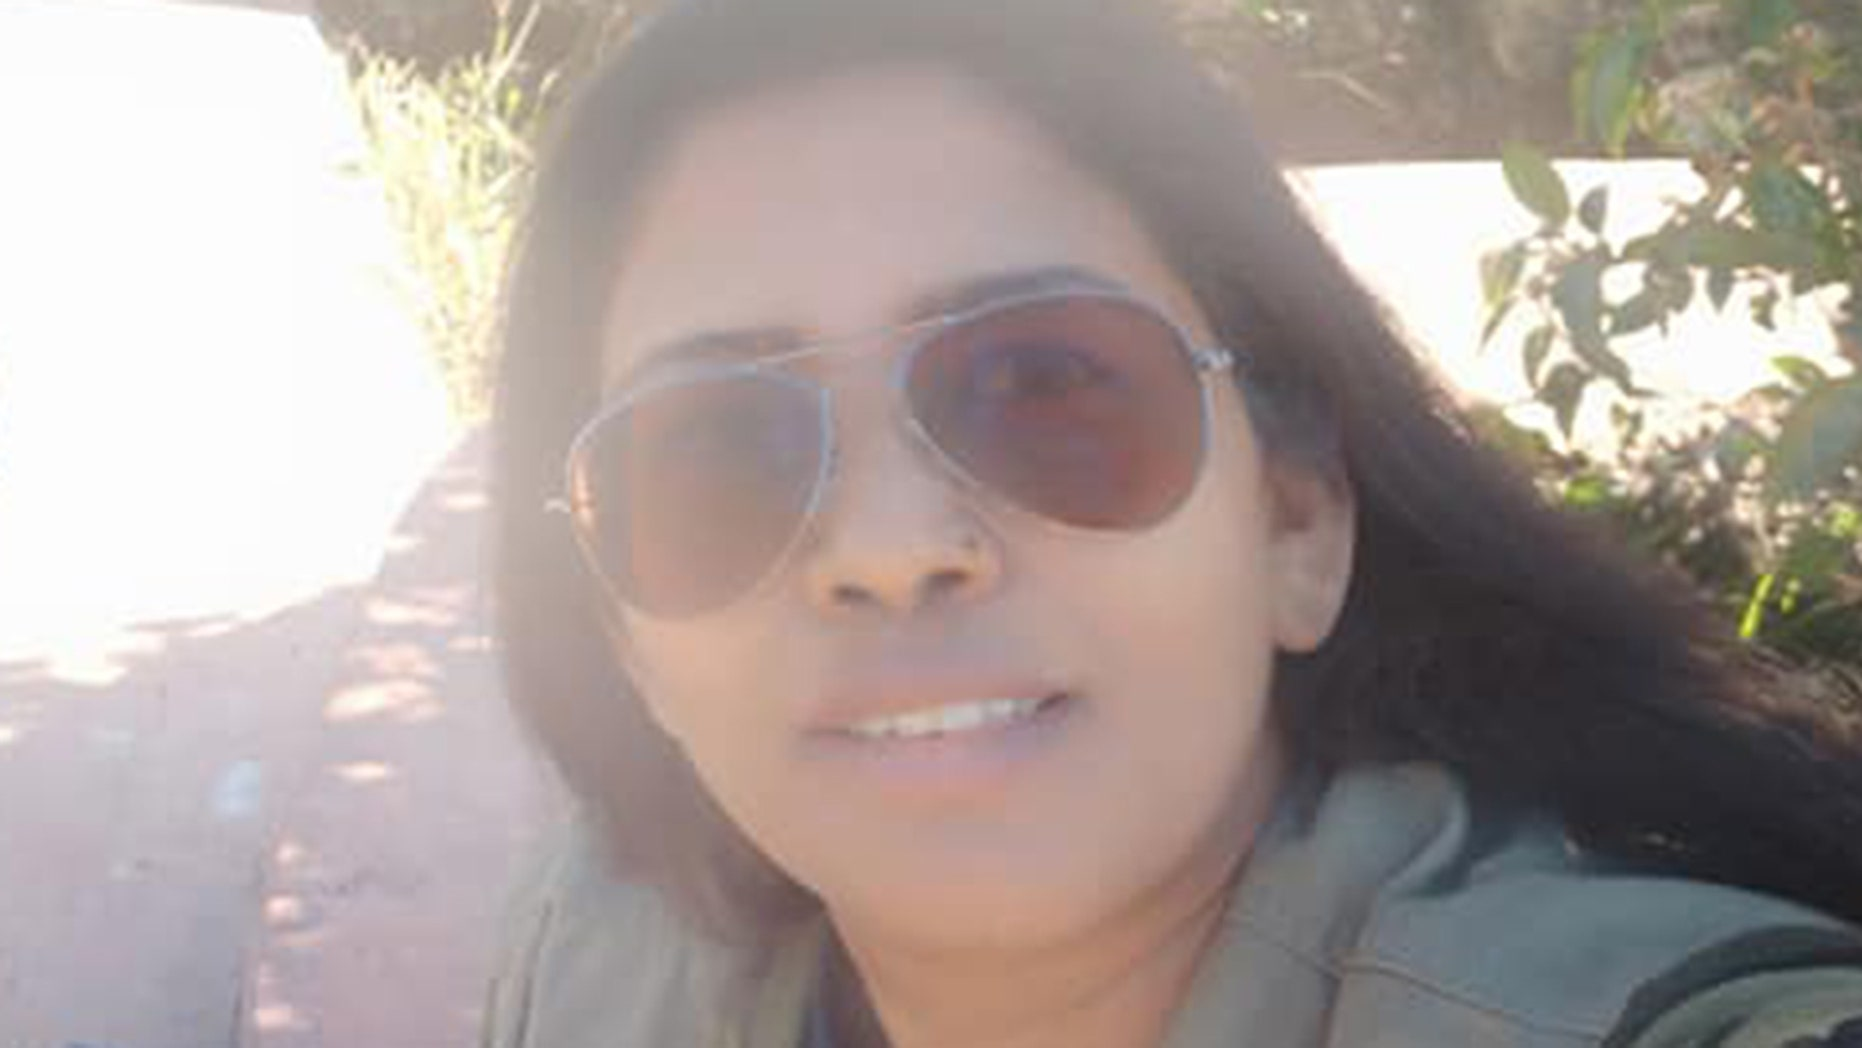 K Dhanya Sanal, 38, became the first woman to climb to the summit of the second highest peak in the southern Kerala state that was once banned to women.